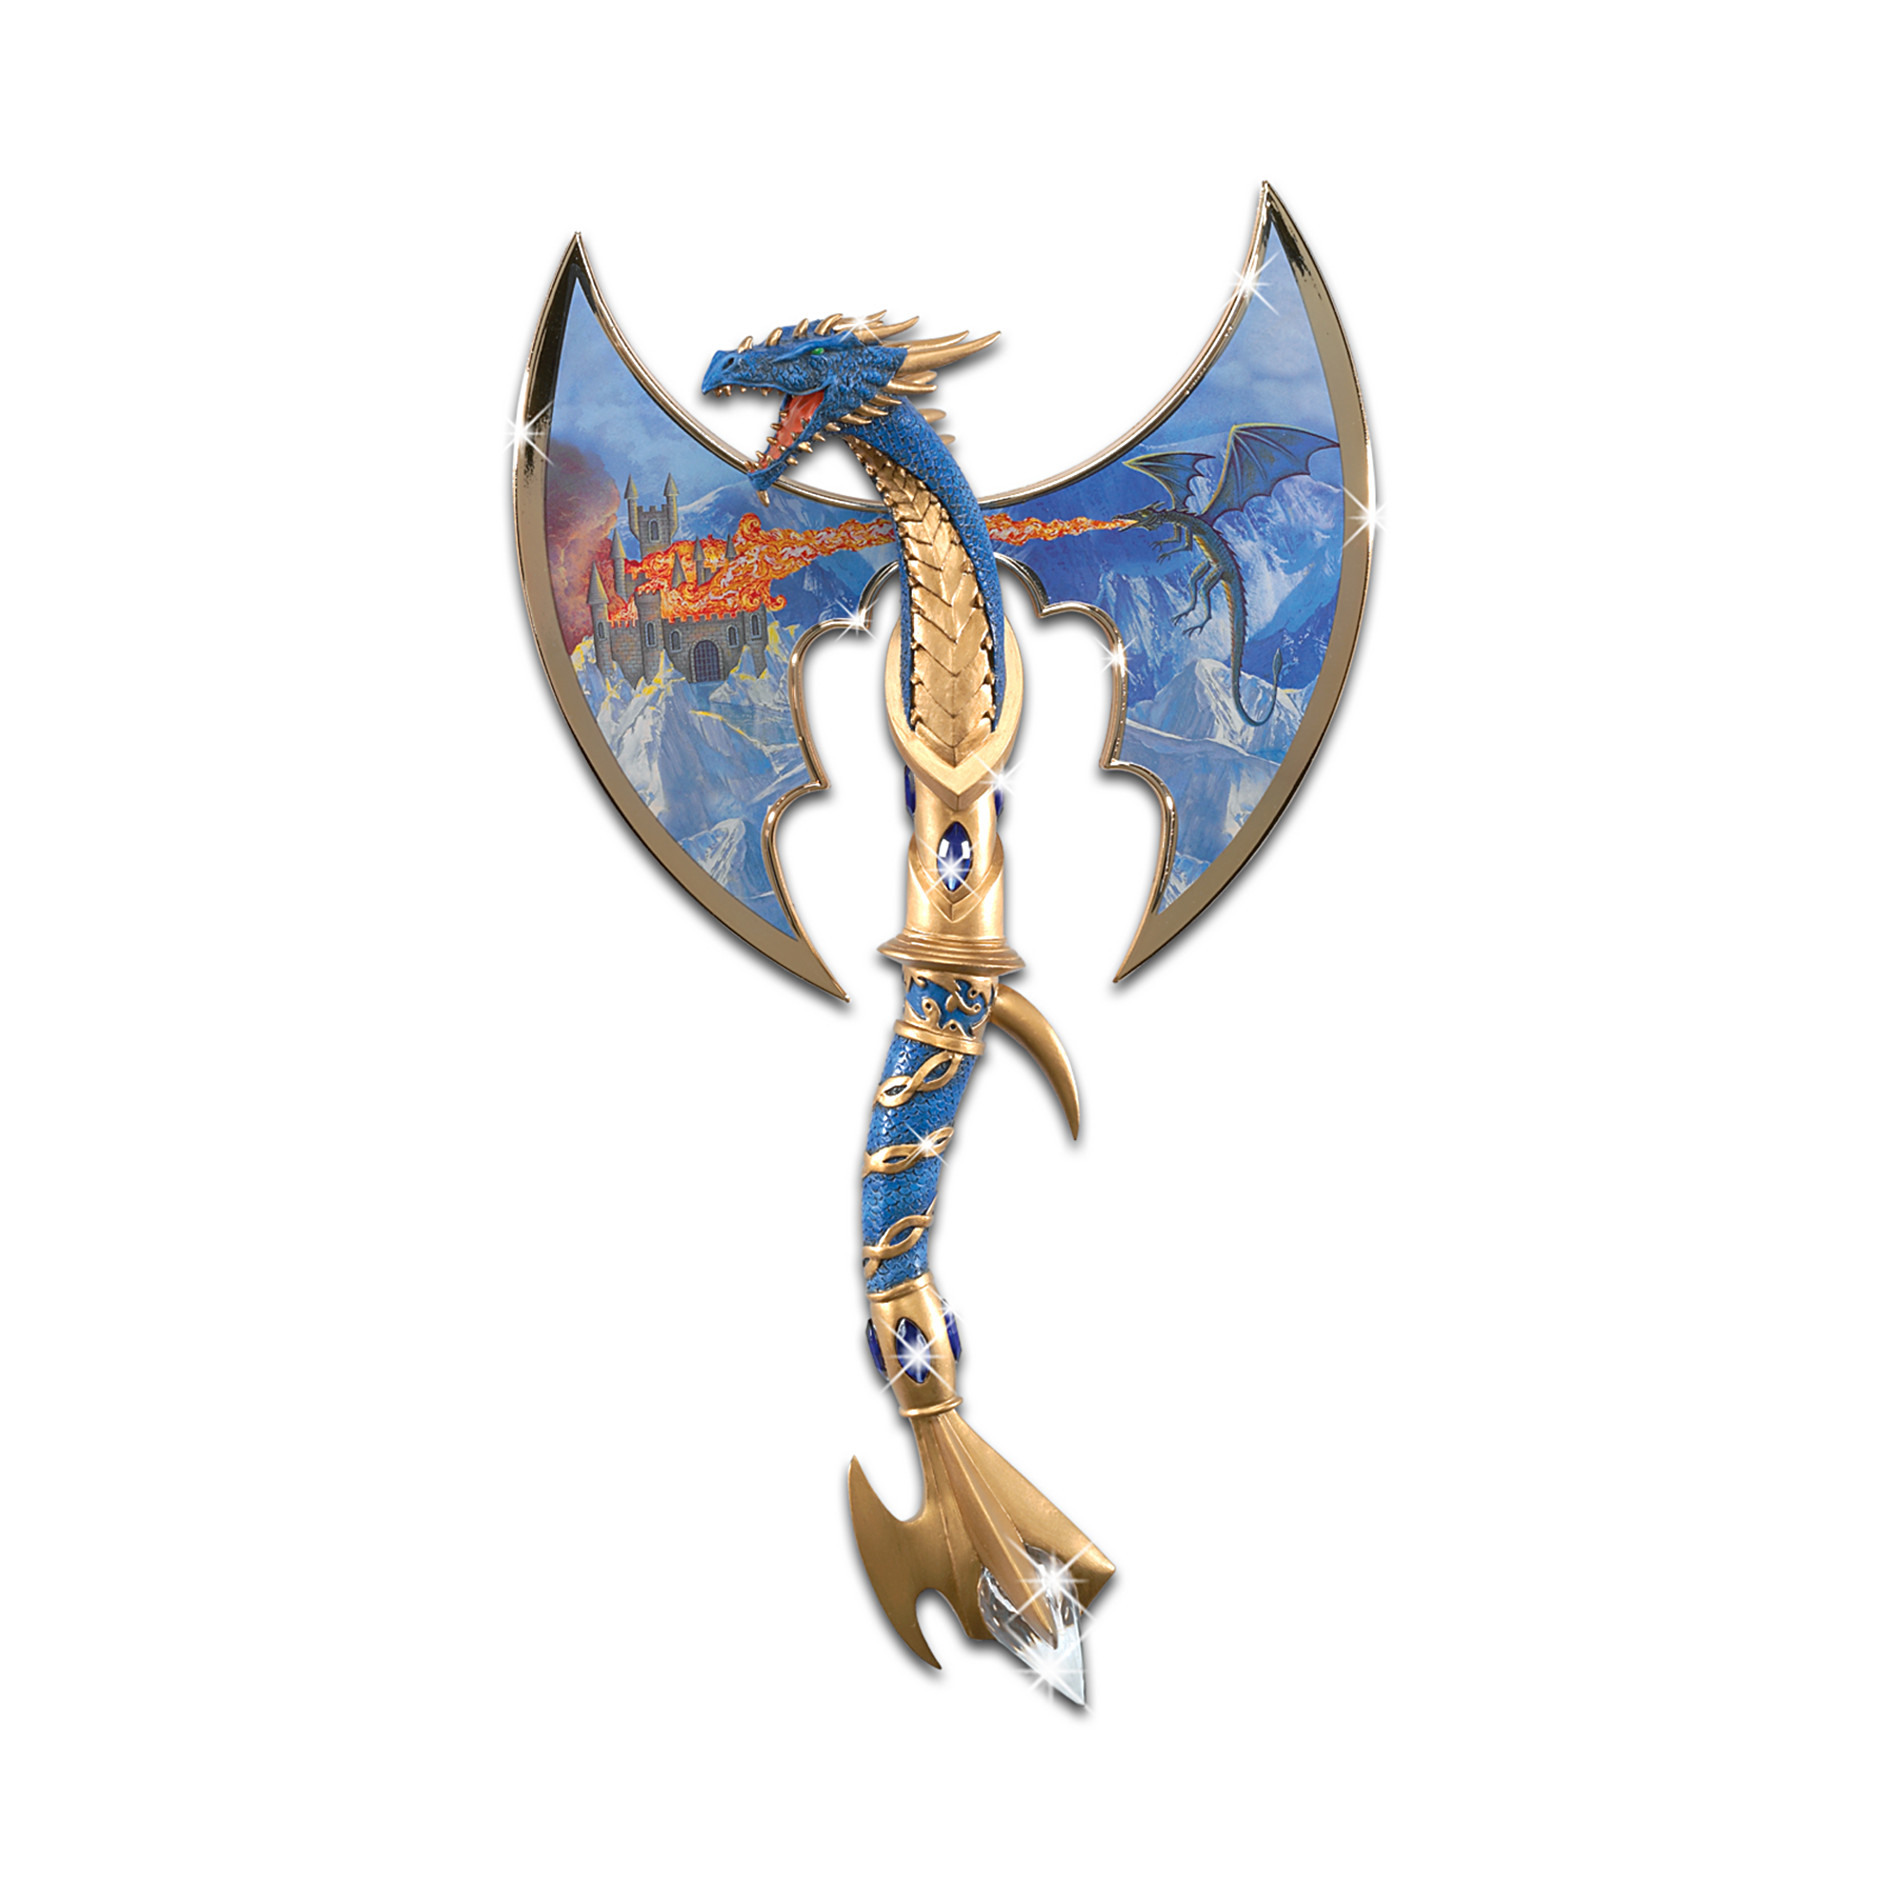 The Hamilton Collection Dragon Battle Axe Wall Decor: Icy Torment at Sears.com